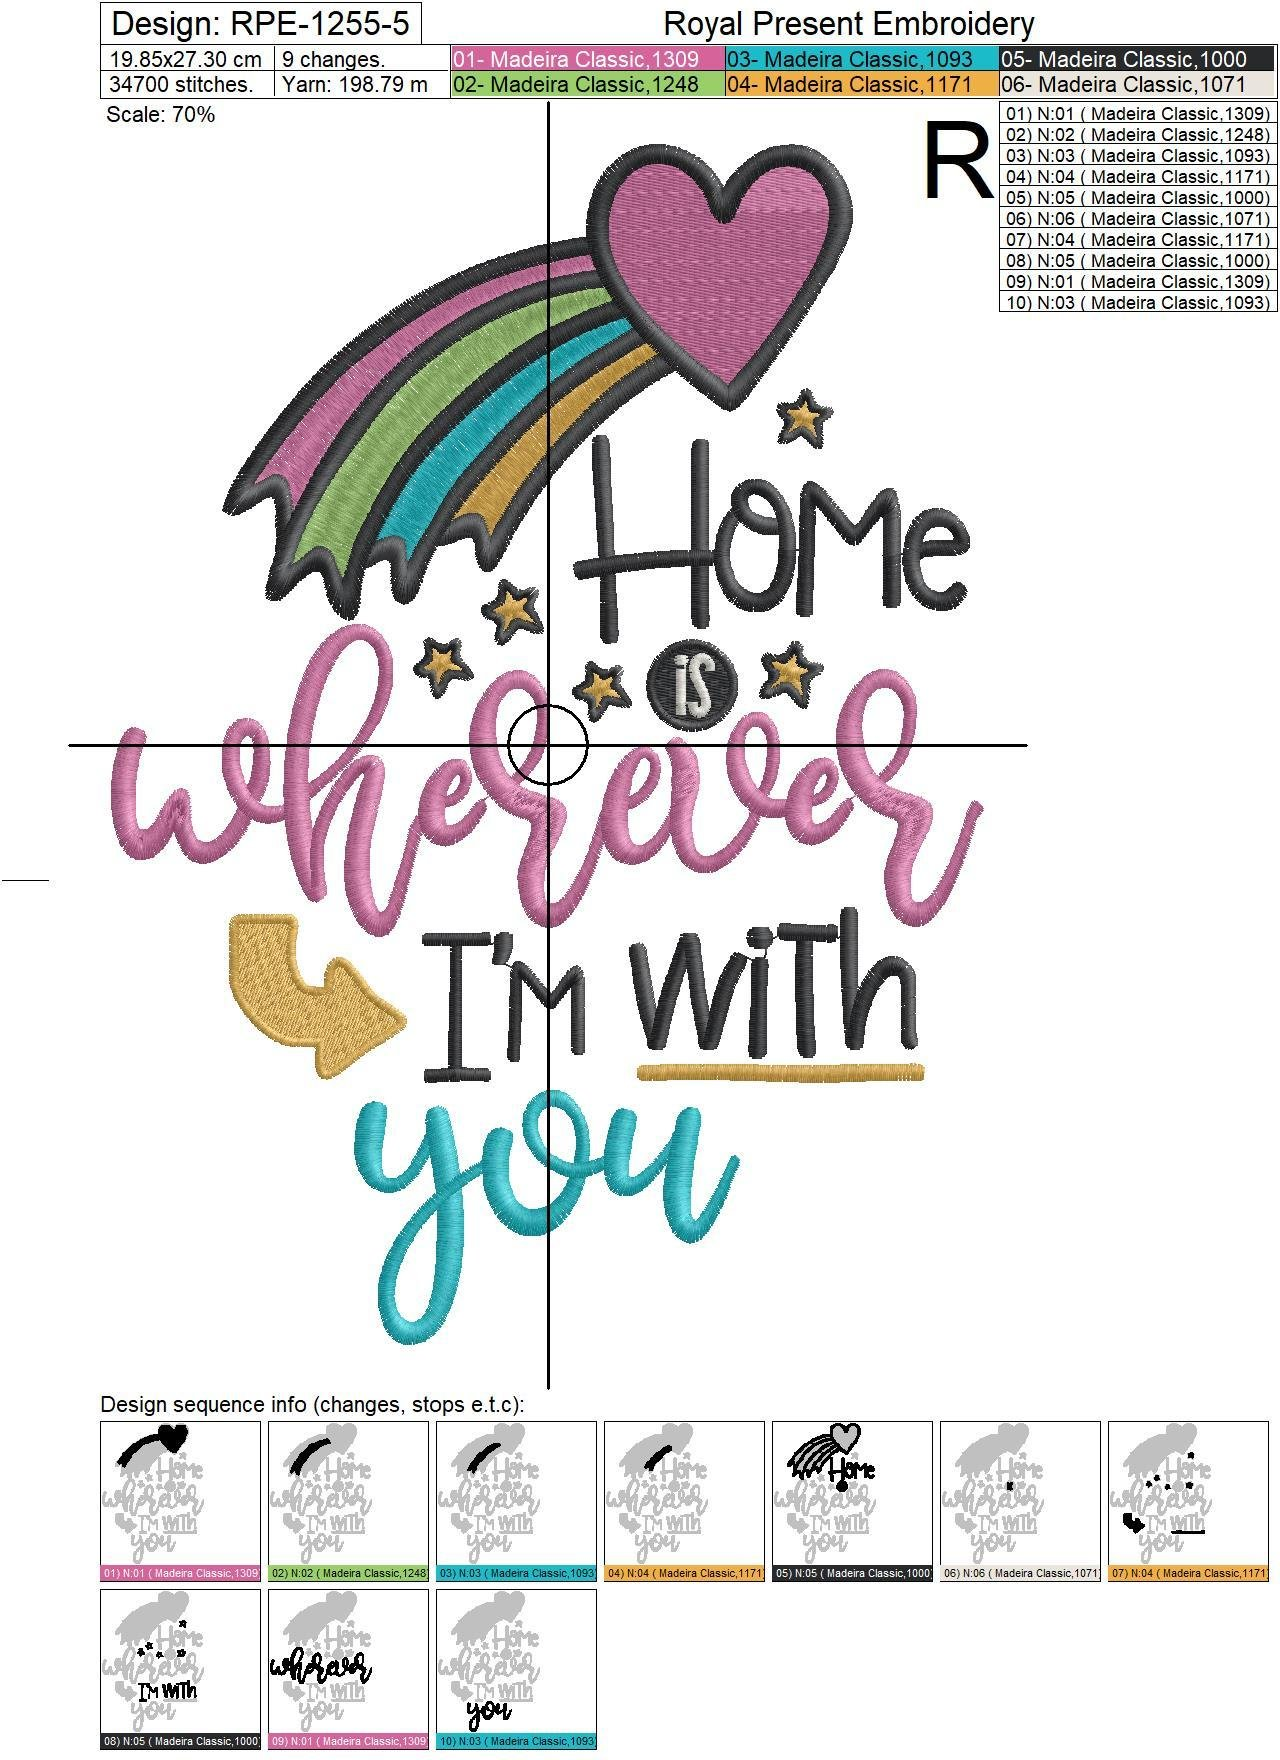 Home is wherever I'm with you Embroidery Design - 5 sizes